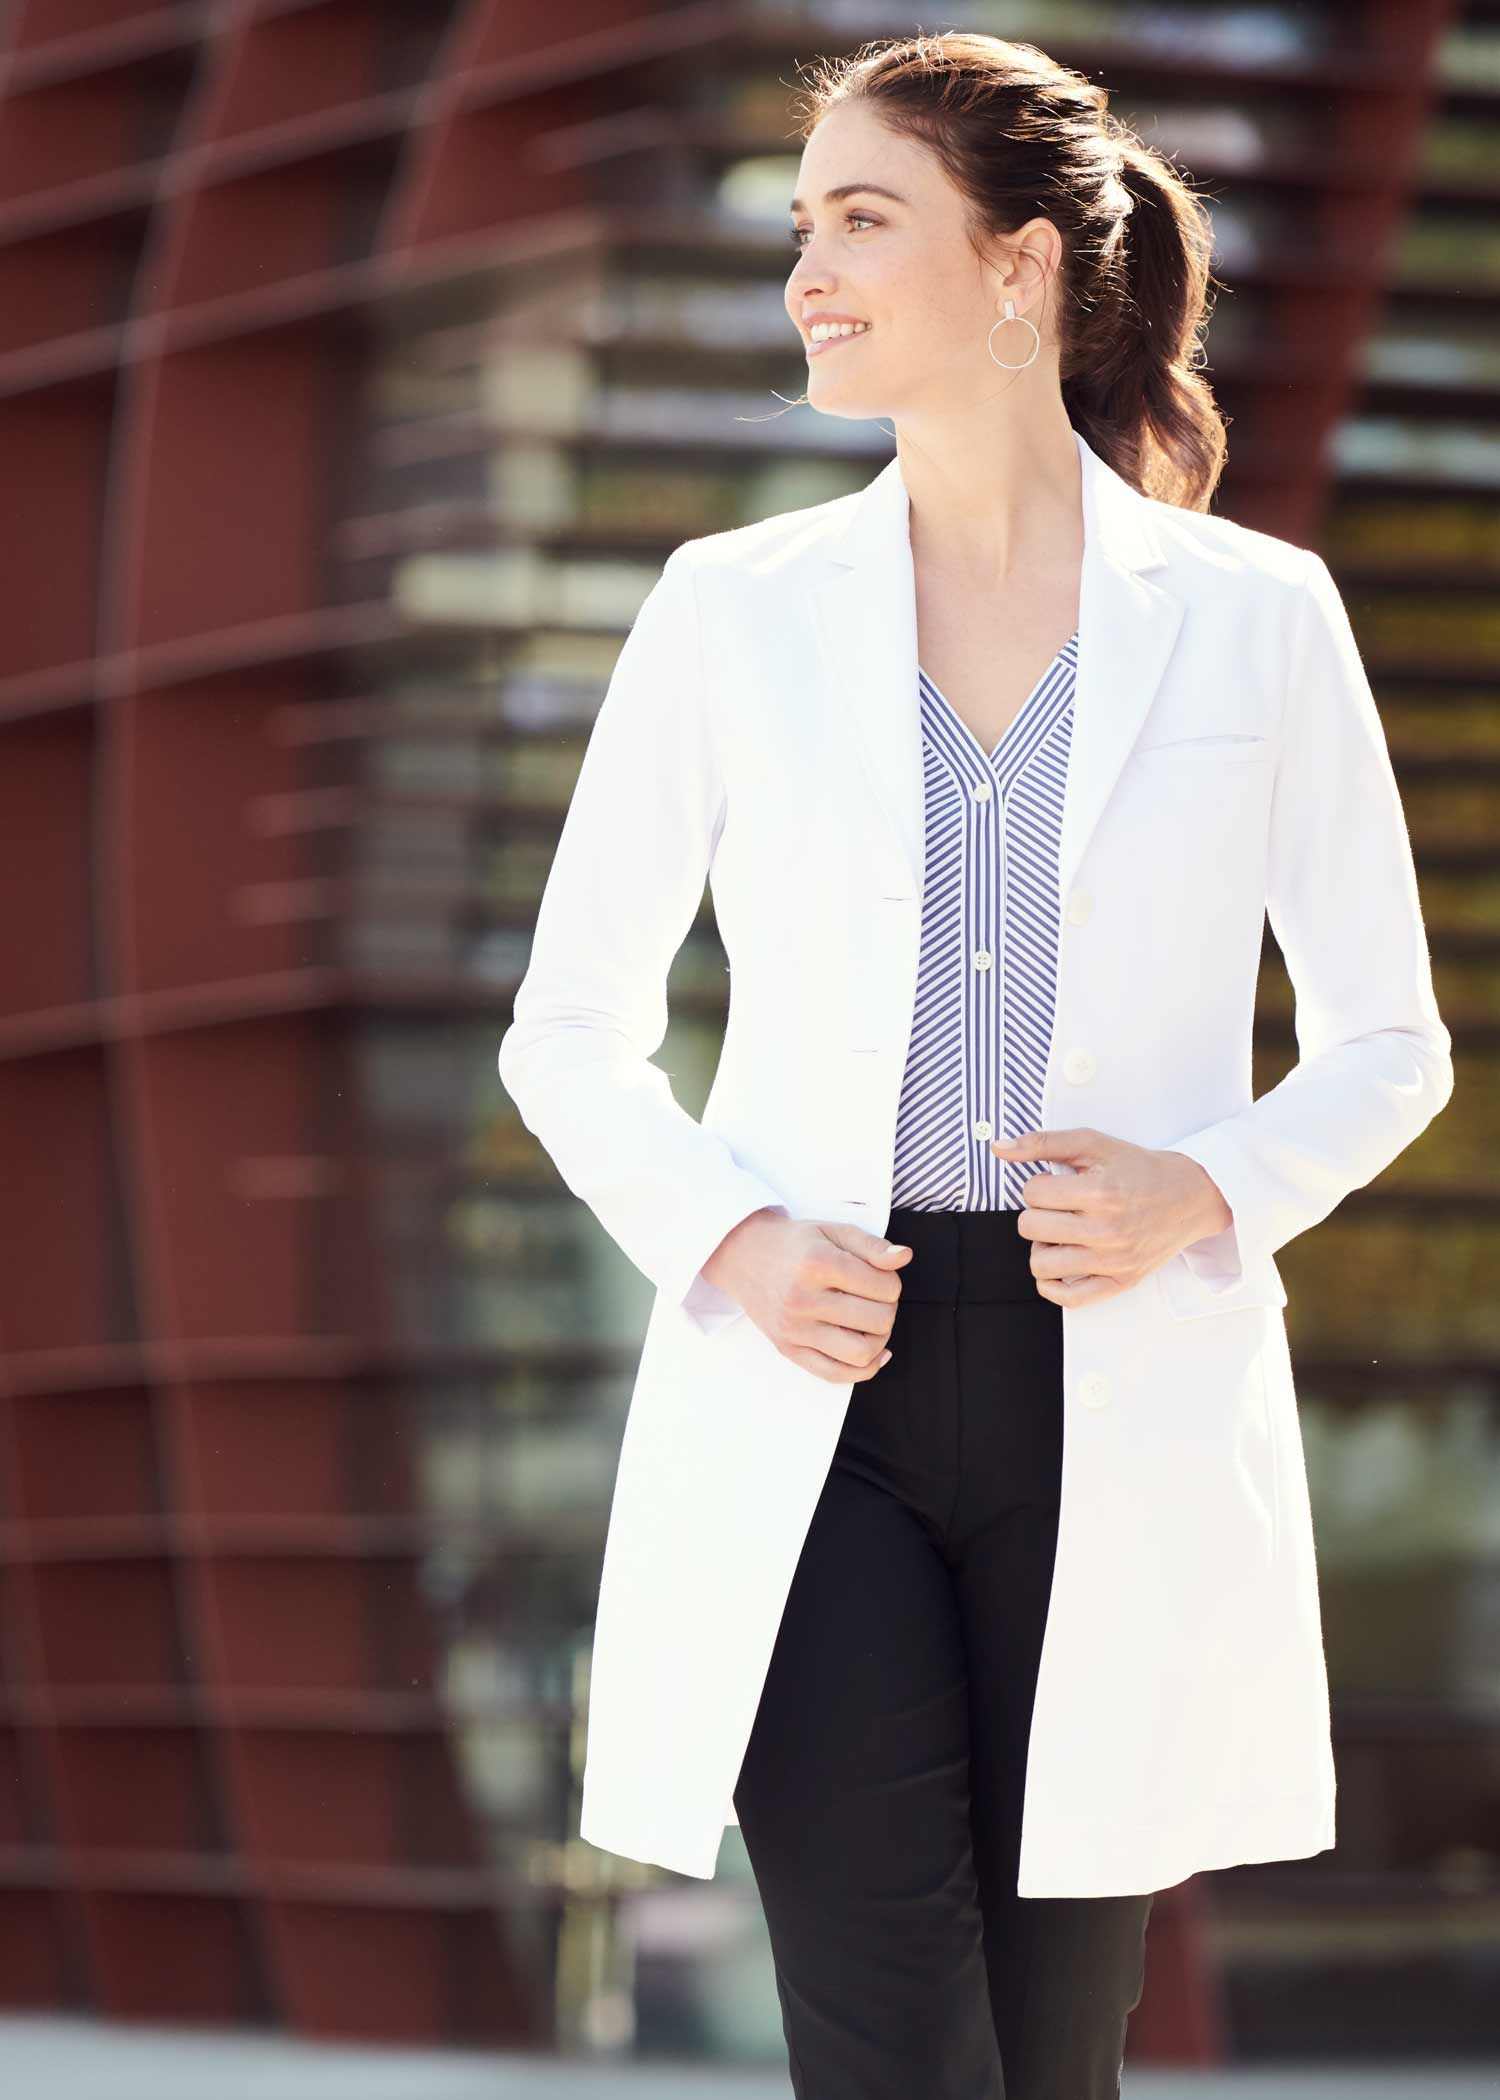 12b06a05302 ✨NEW PRODUCT✨ Meet the Rebecca Slim Fit Lab Coat, a classically tailored white  coat made of performance M3 fabric.